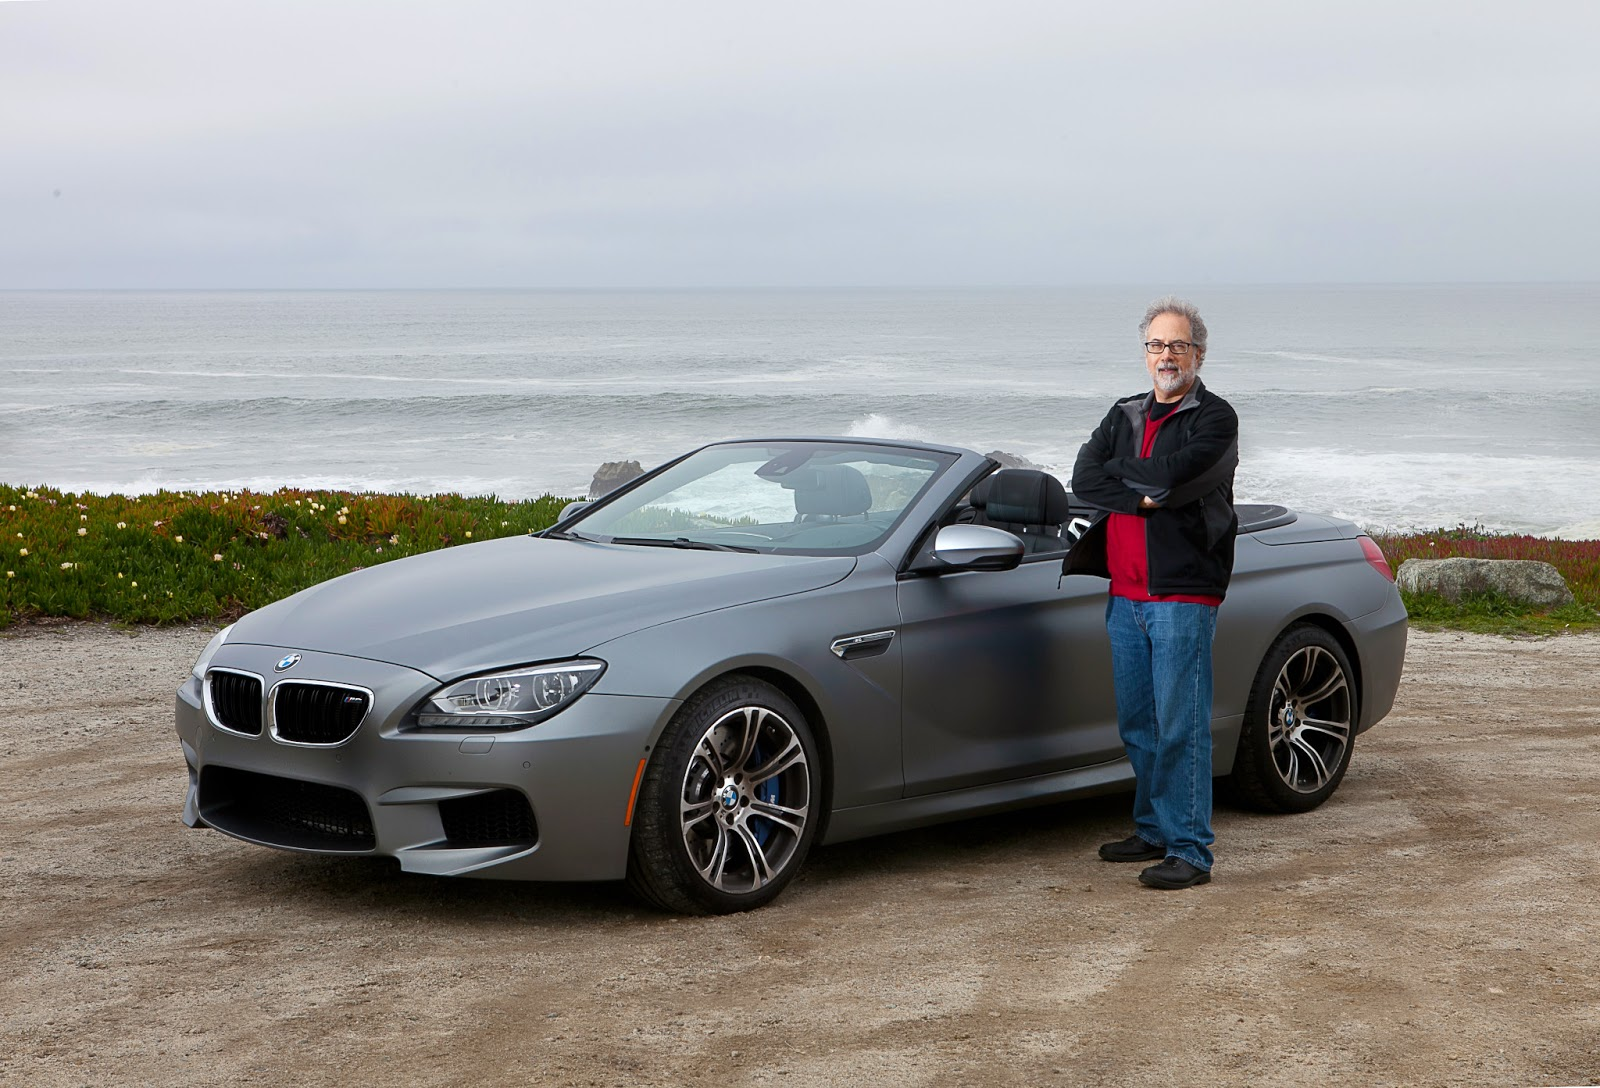 test driving life bmw m6 convertible a supercar for a special occasion. Black Bedroom Furniture Sets. Home Design Ideas